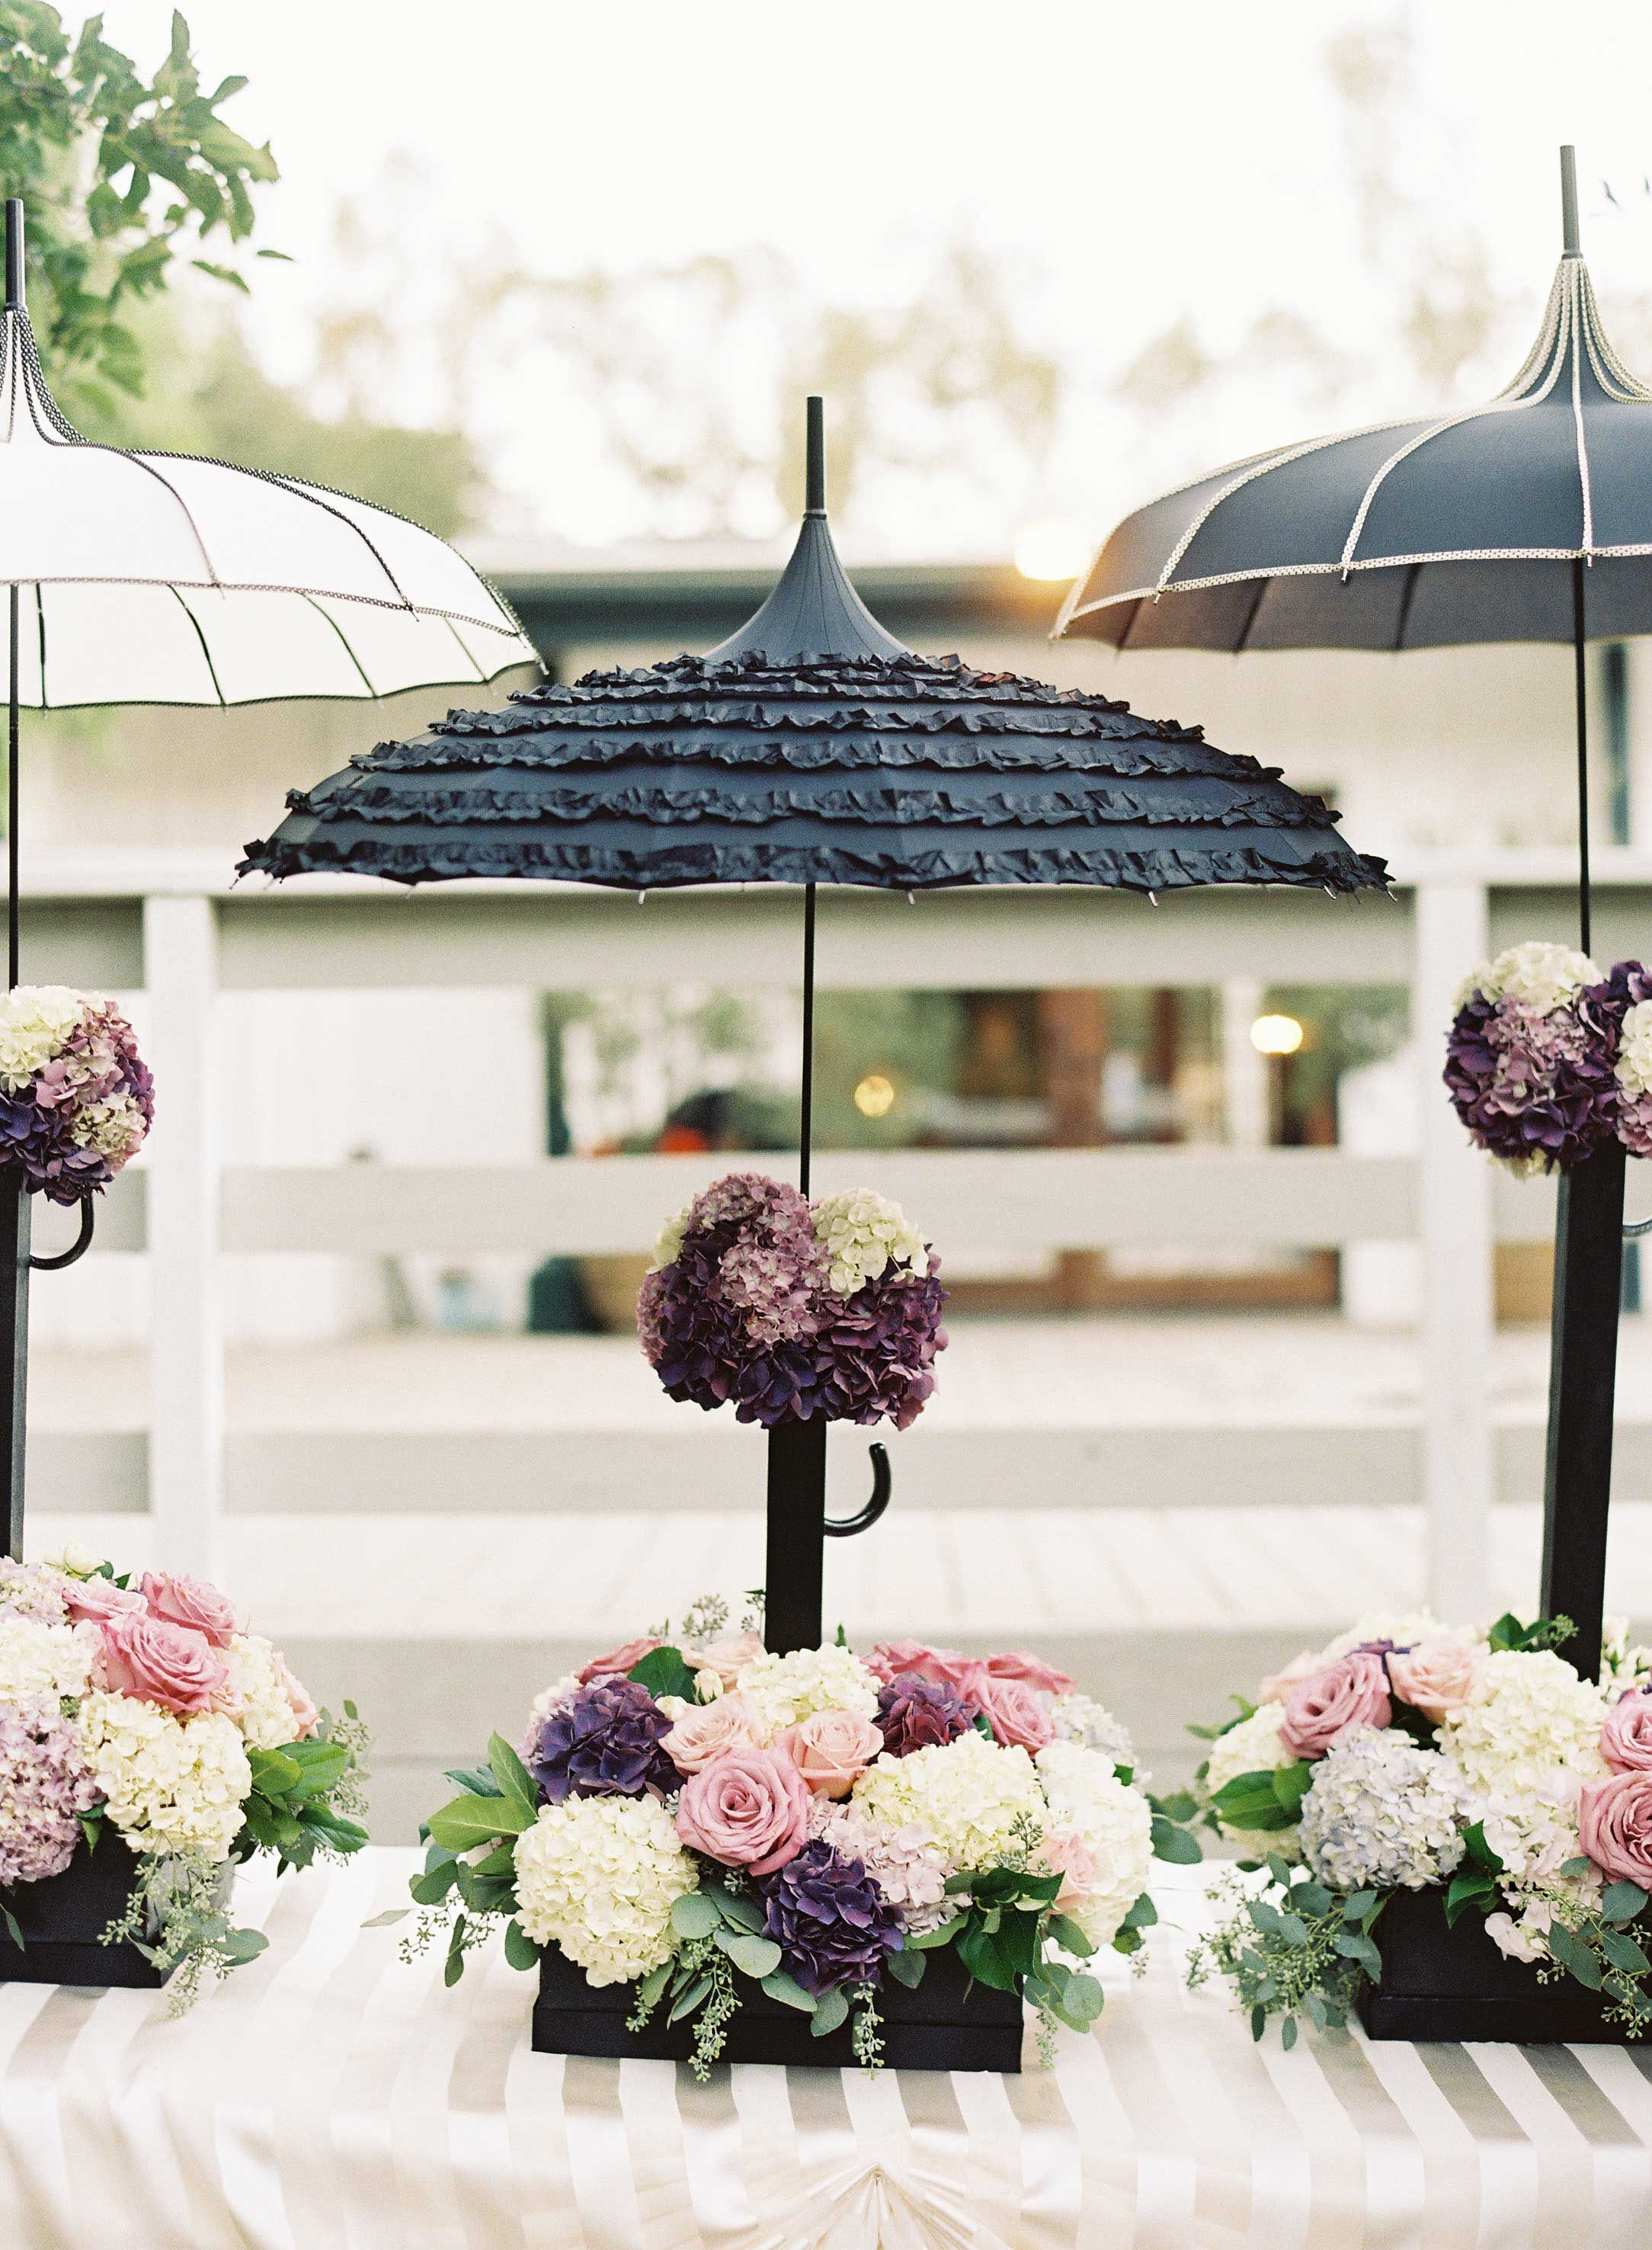 Magical Garden Ceremony Tented Reception With Chic